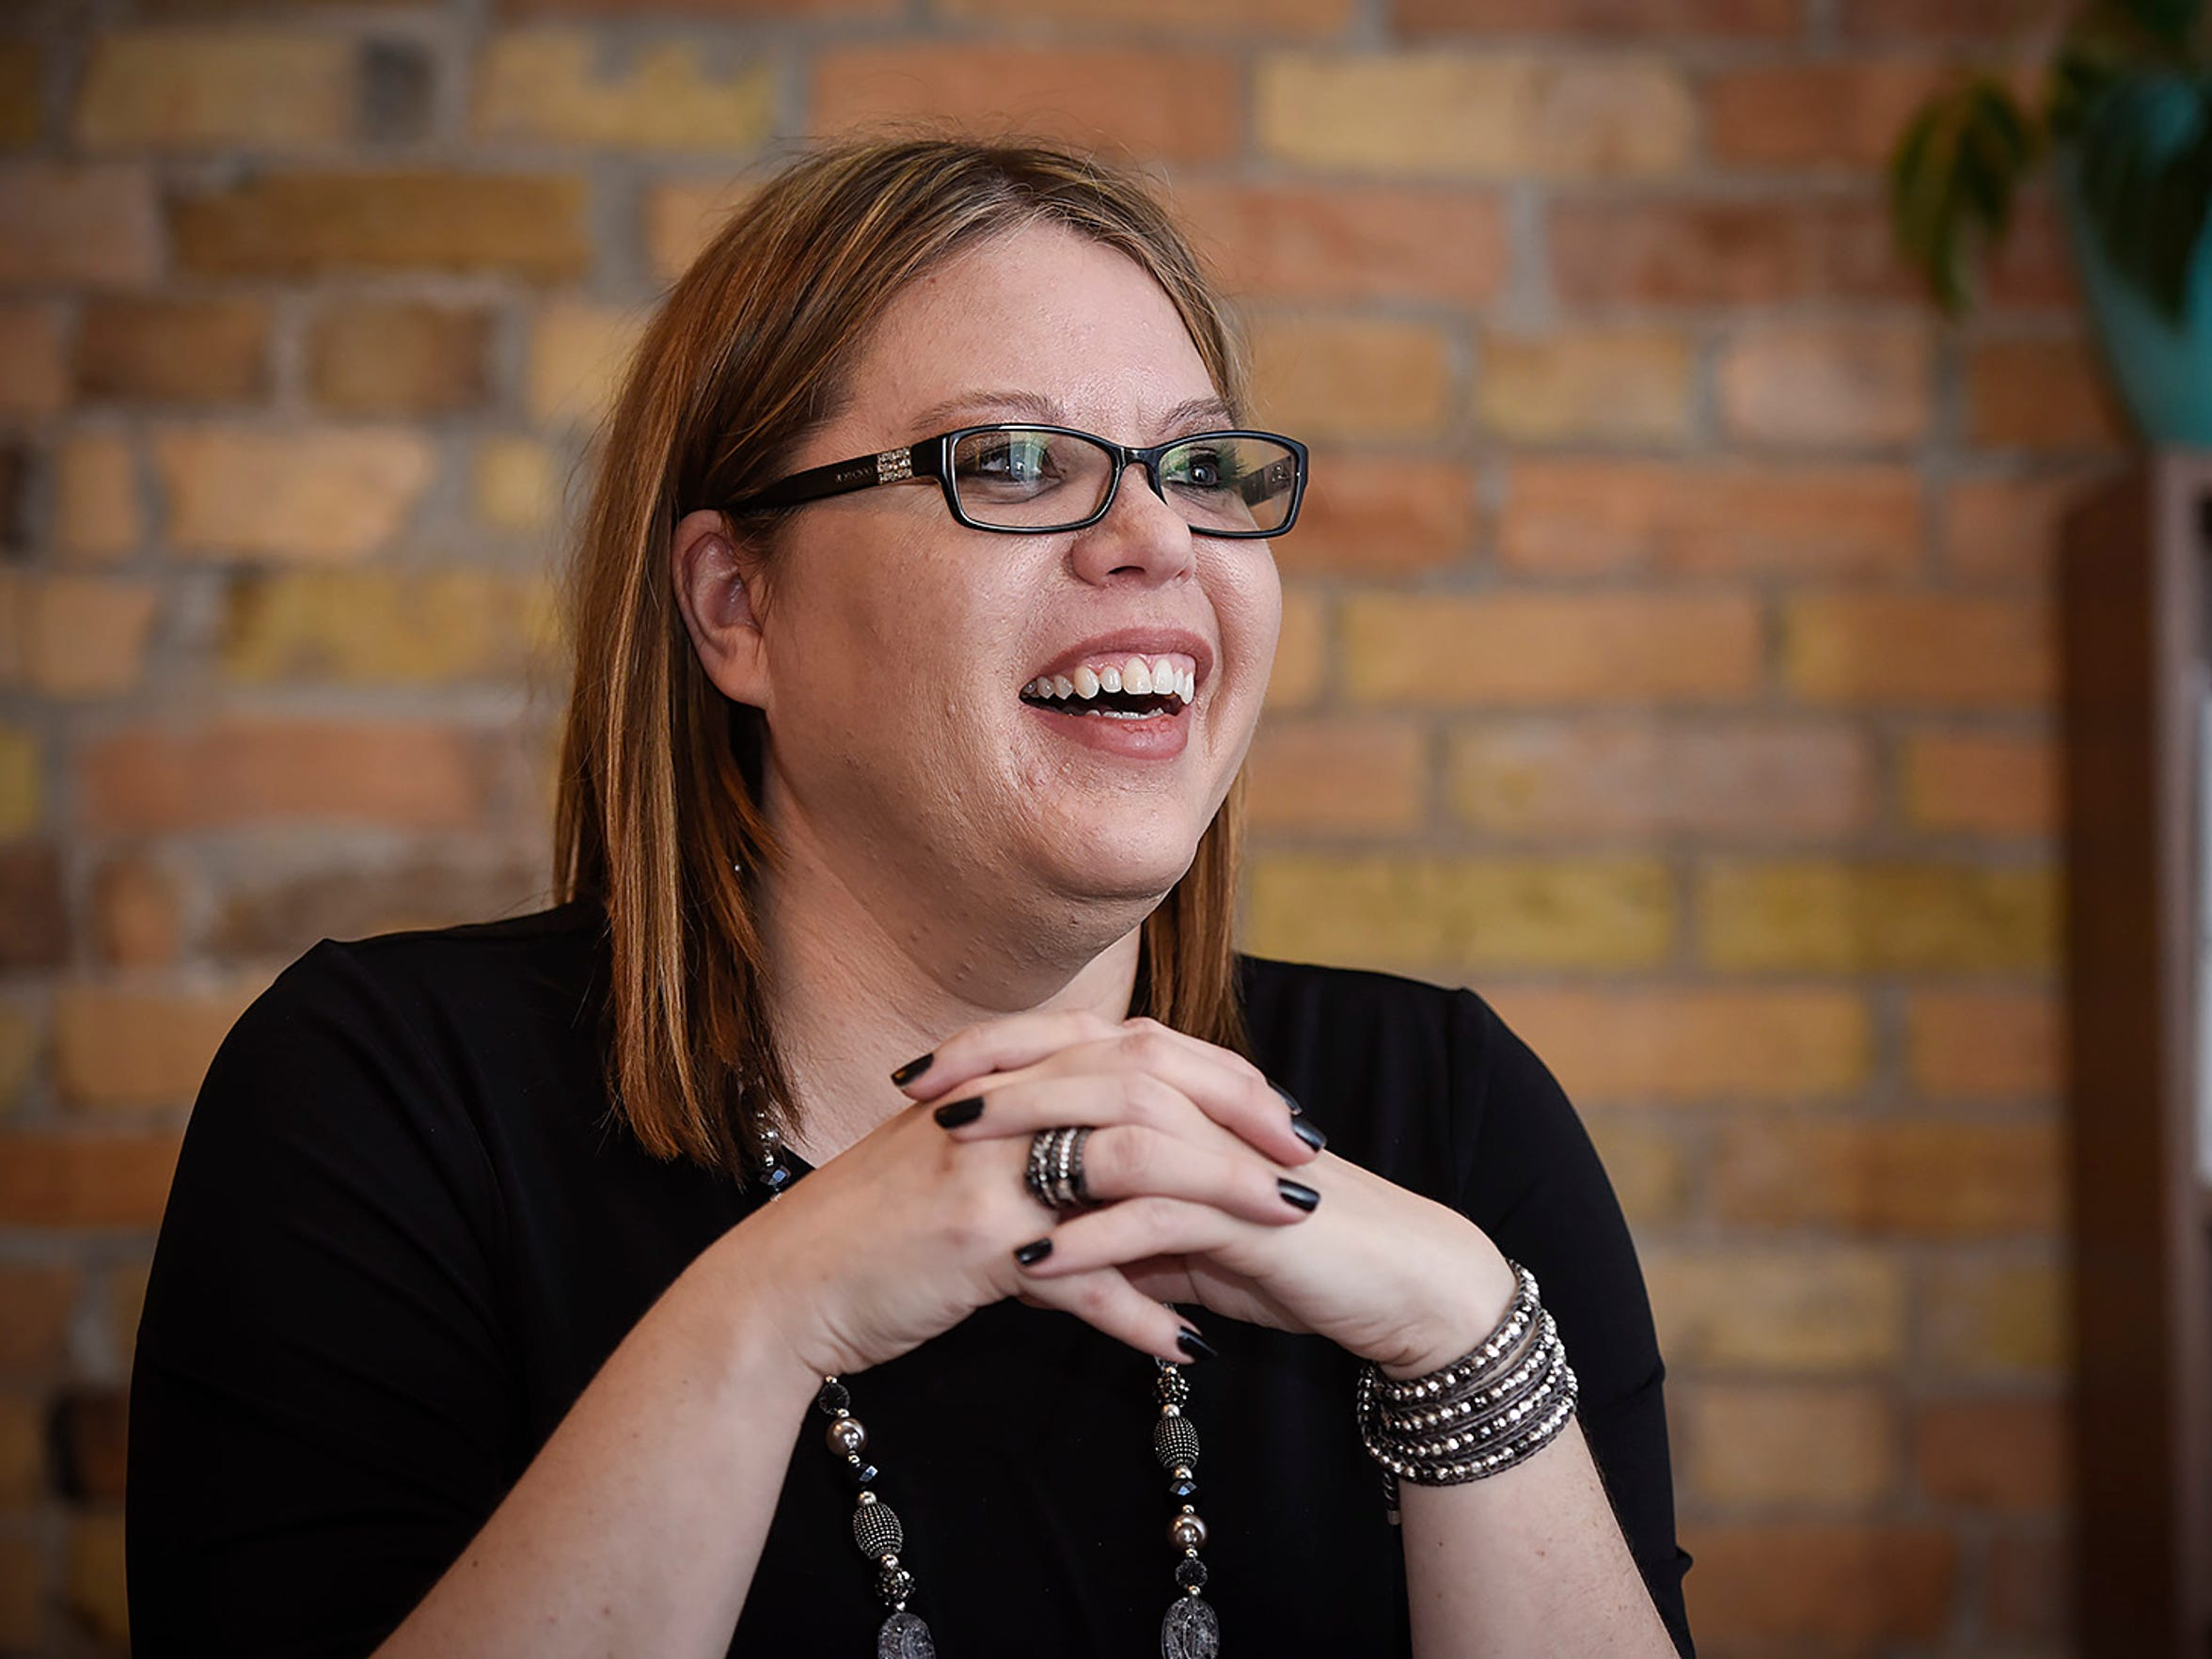 Heather Hoskins is the controller at GeoComm. She is shown Wednesday, Dec. 13, in St. Cloud.